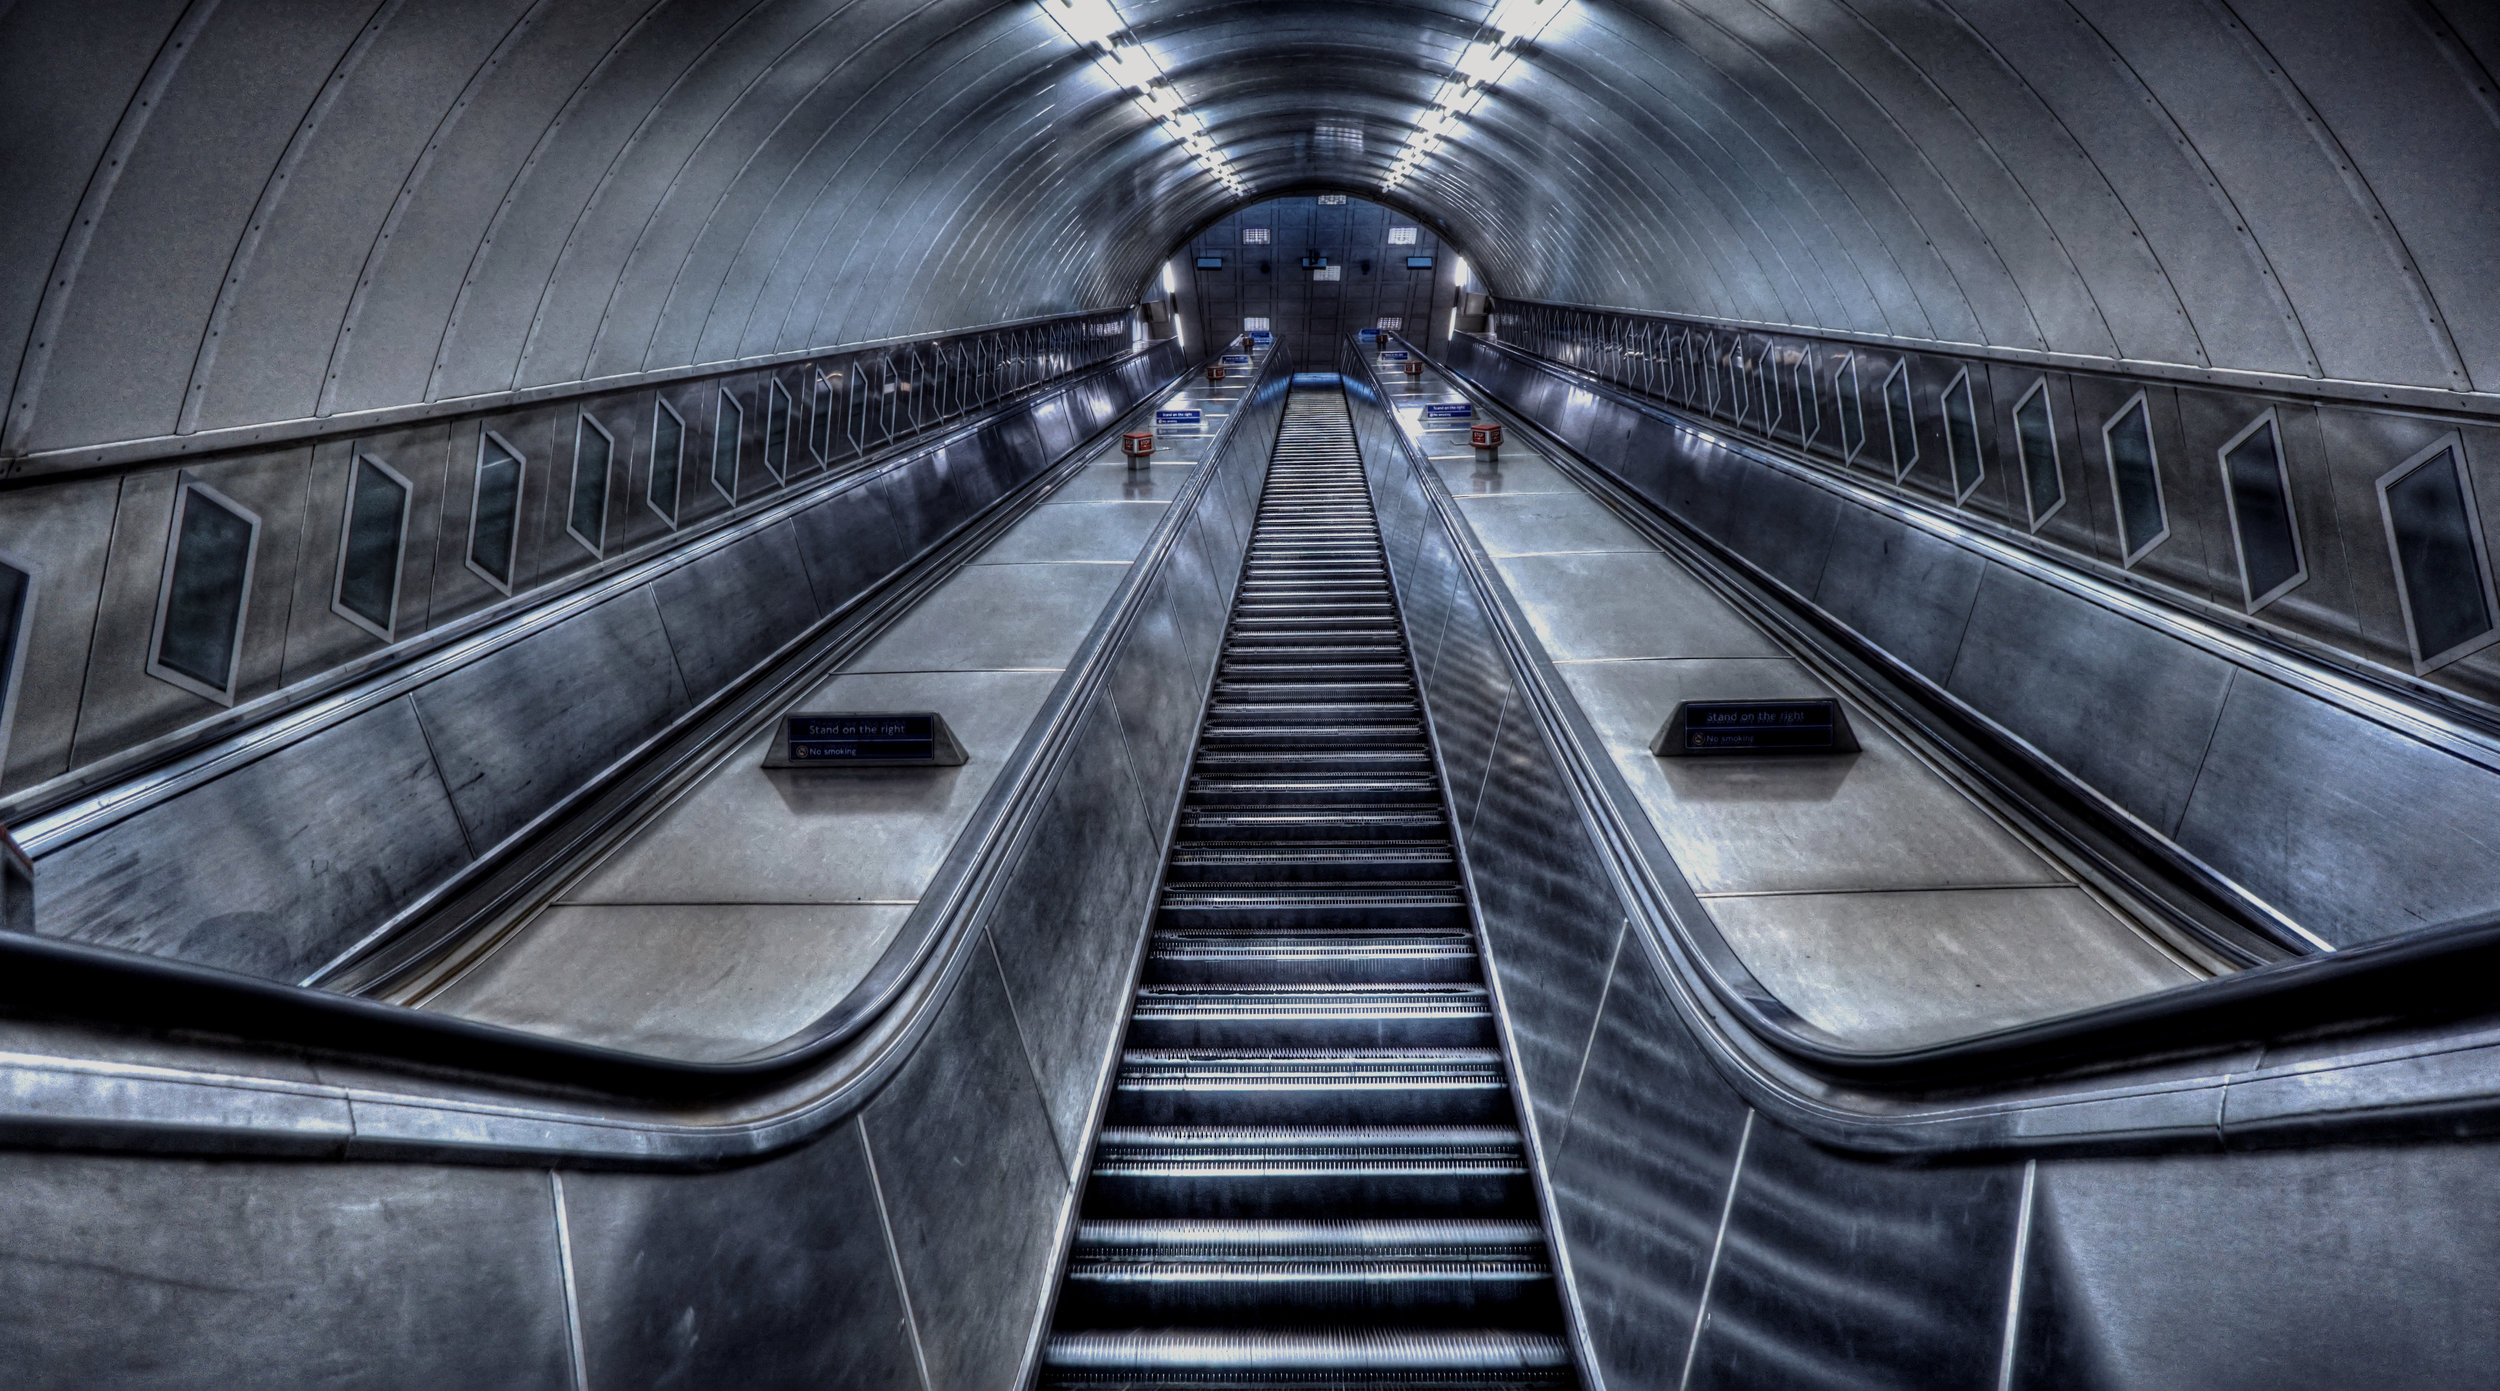 london escalator piclq.jpg